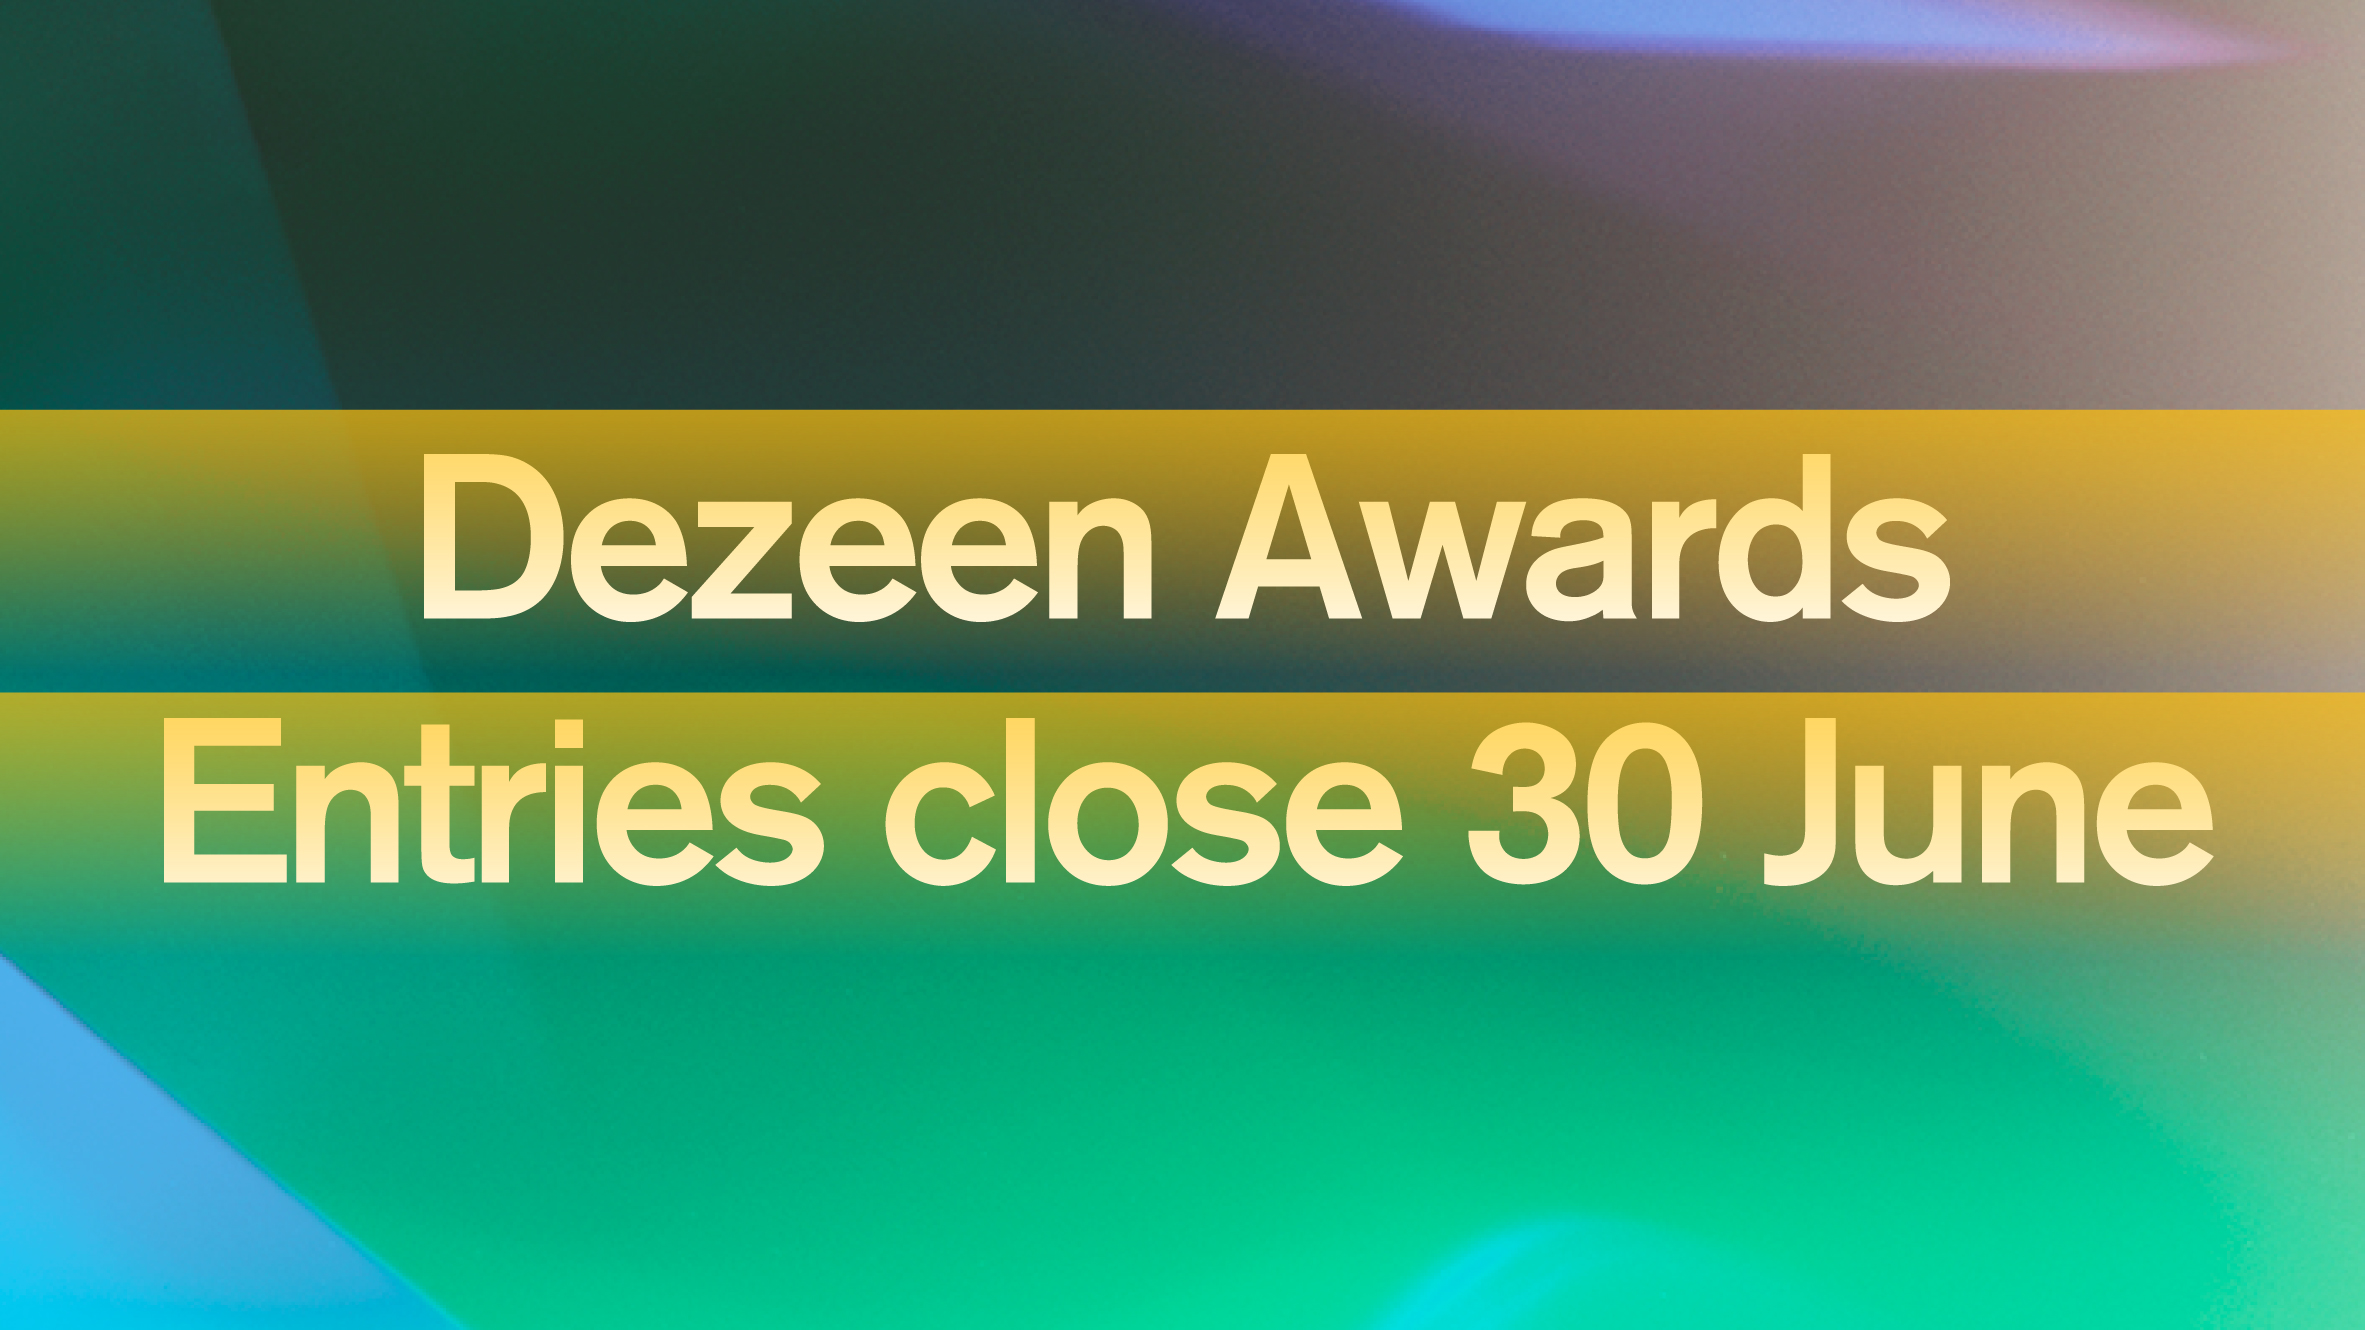 Dezeen Awards trophies to be designed by Atelier NL